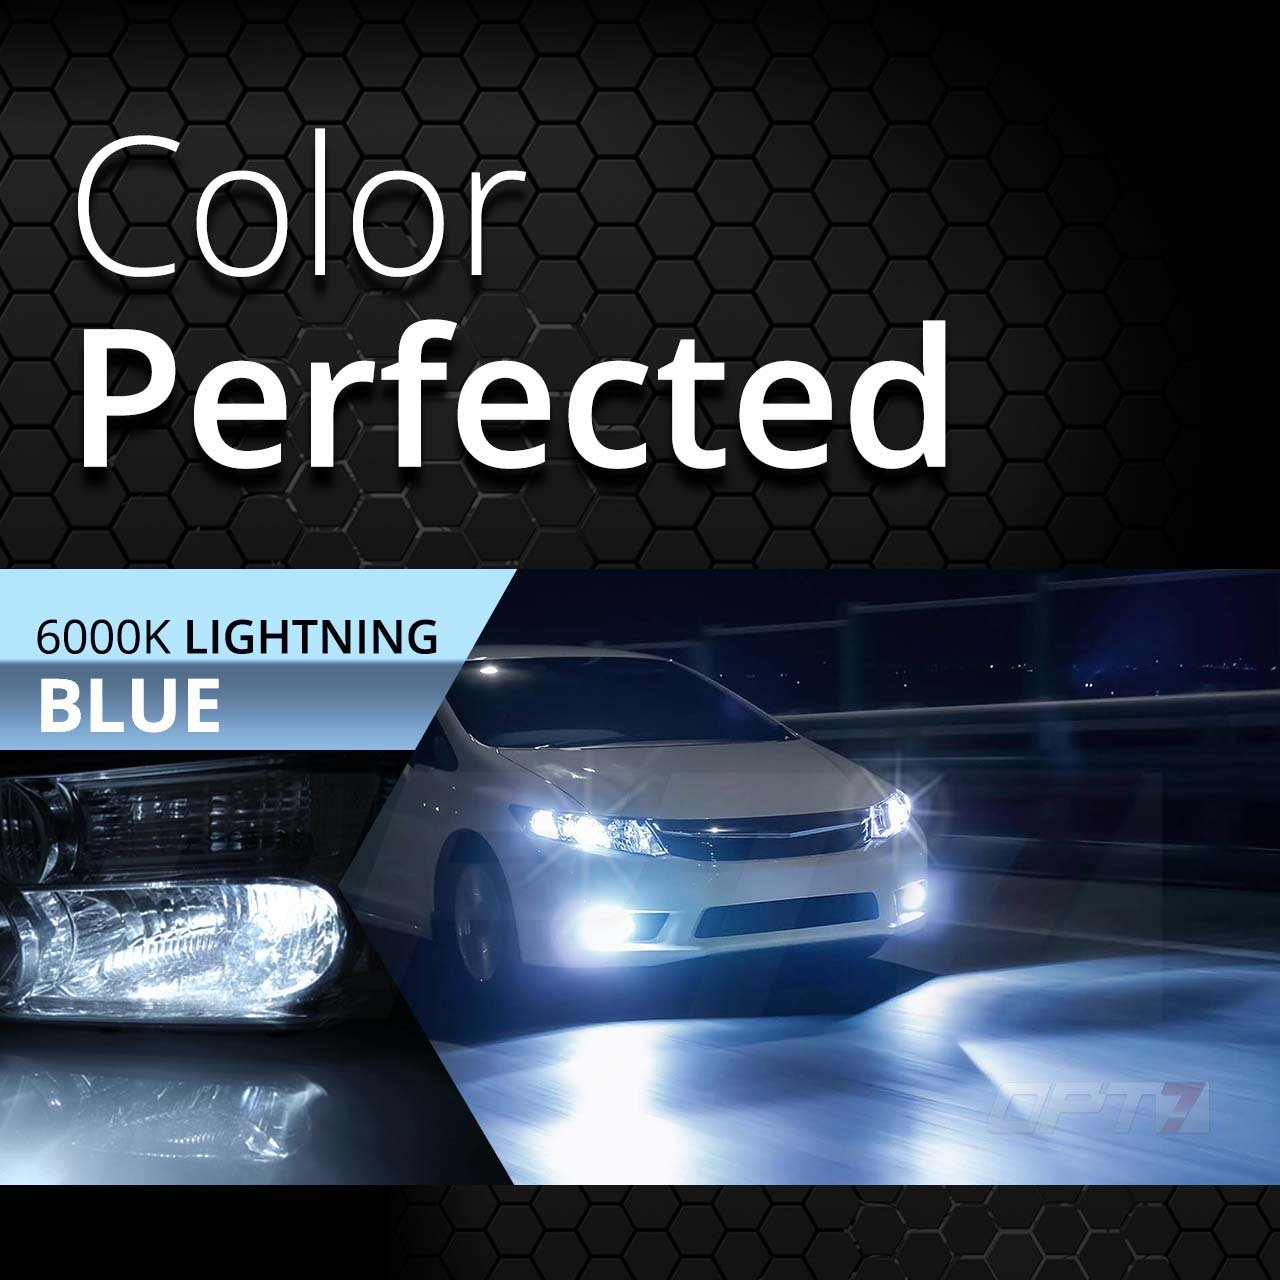 10000K Deep Blue Xenon Light All Bulb Colors and Sizes 4X Longer Life 2 Yr Warranty 5X Brighter OPT7 Blitz 55W H11 H8 H9 HID Kit